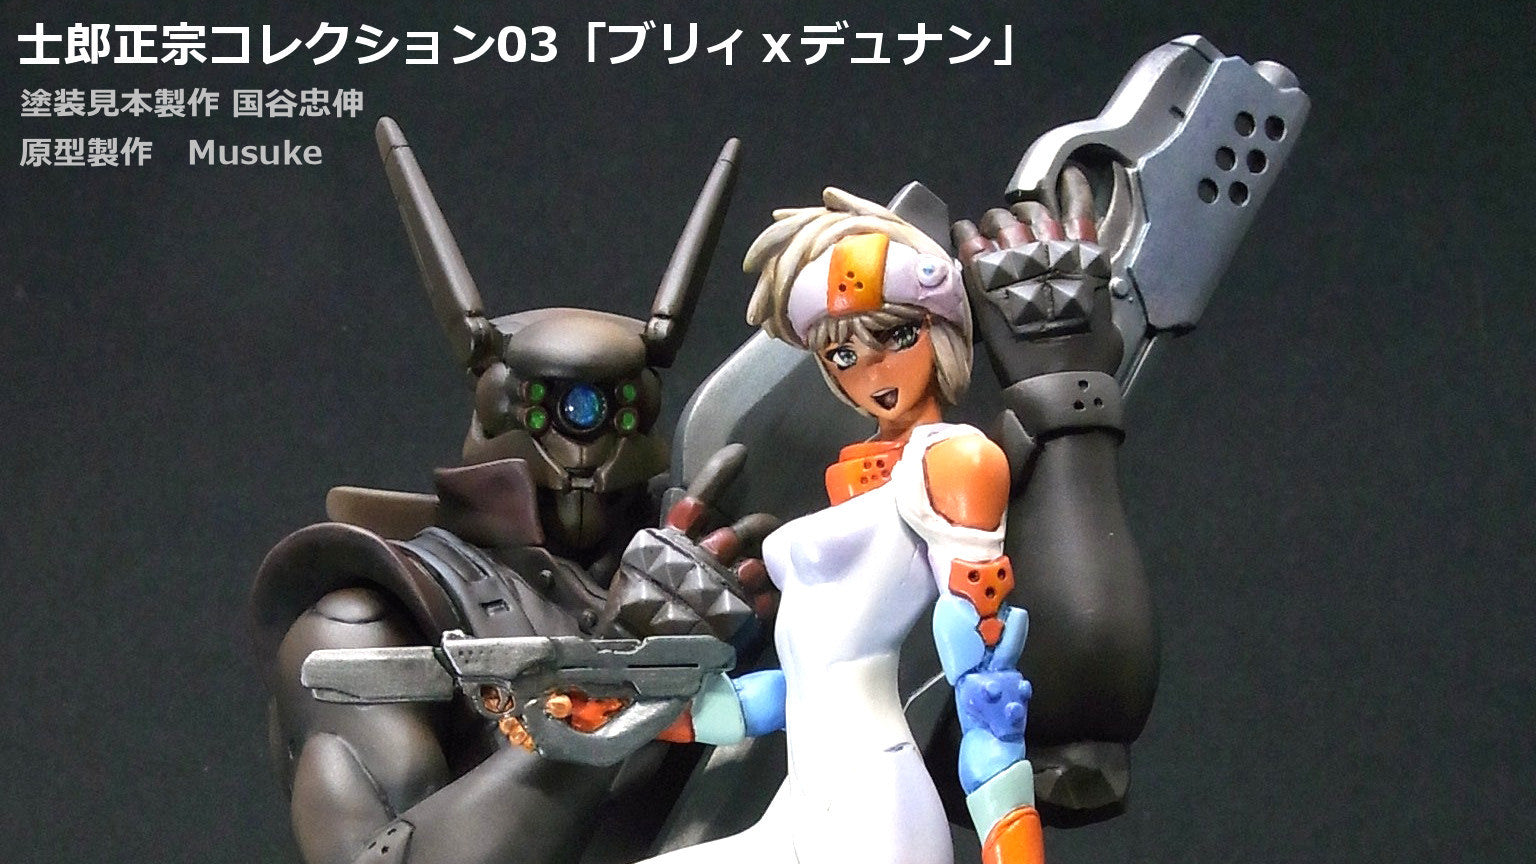 The Top 10 Wonder Fest Figures We Can Only Drool At Over the Internet